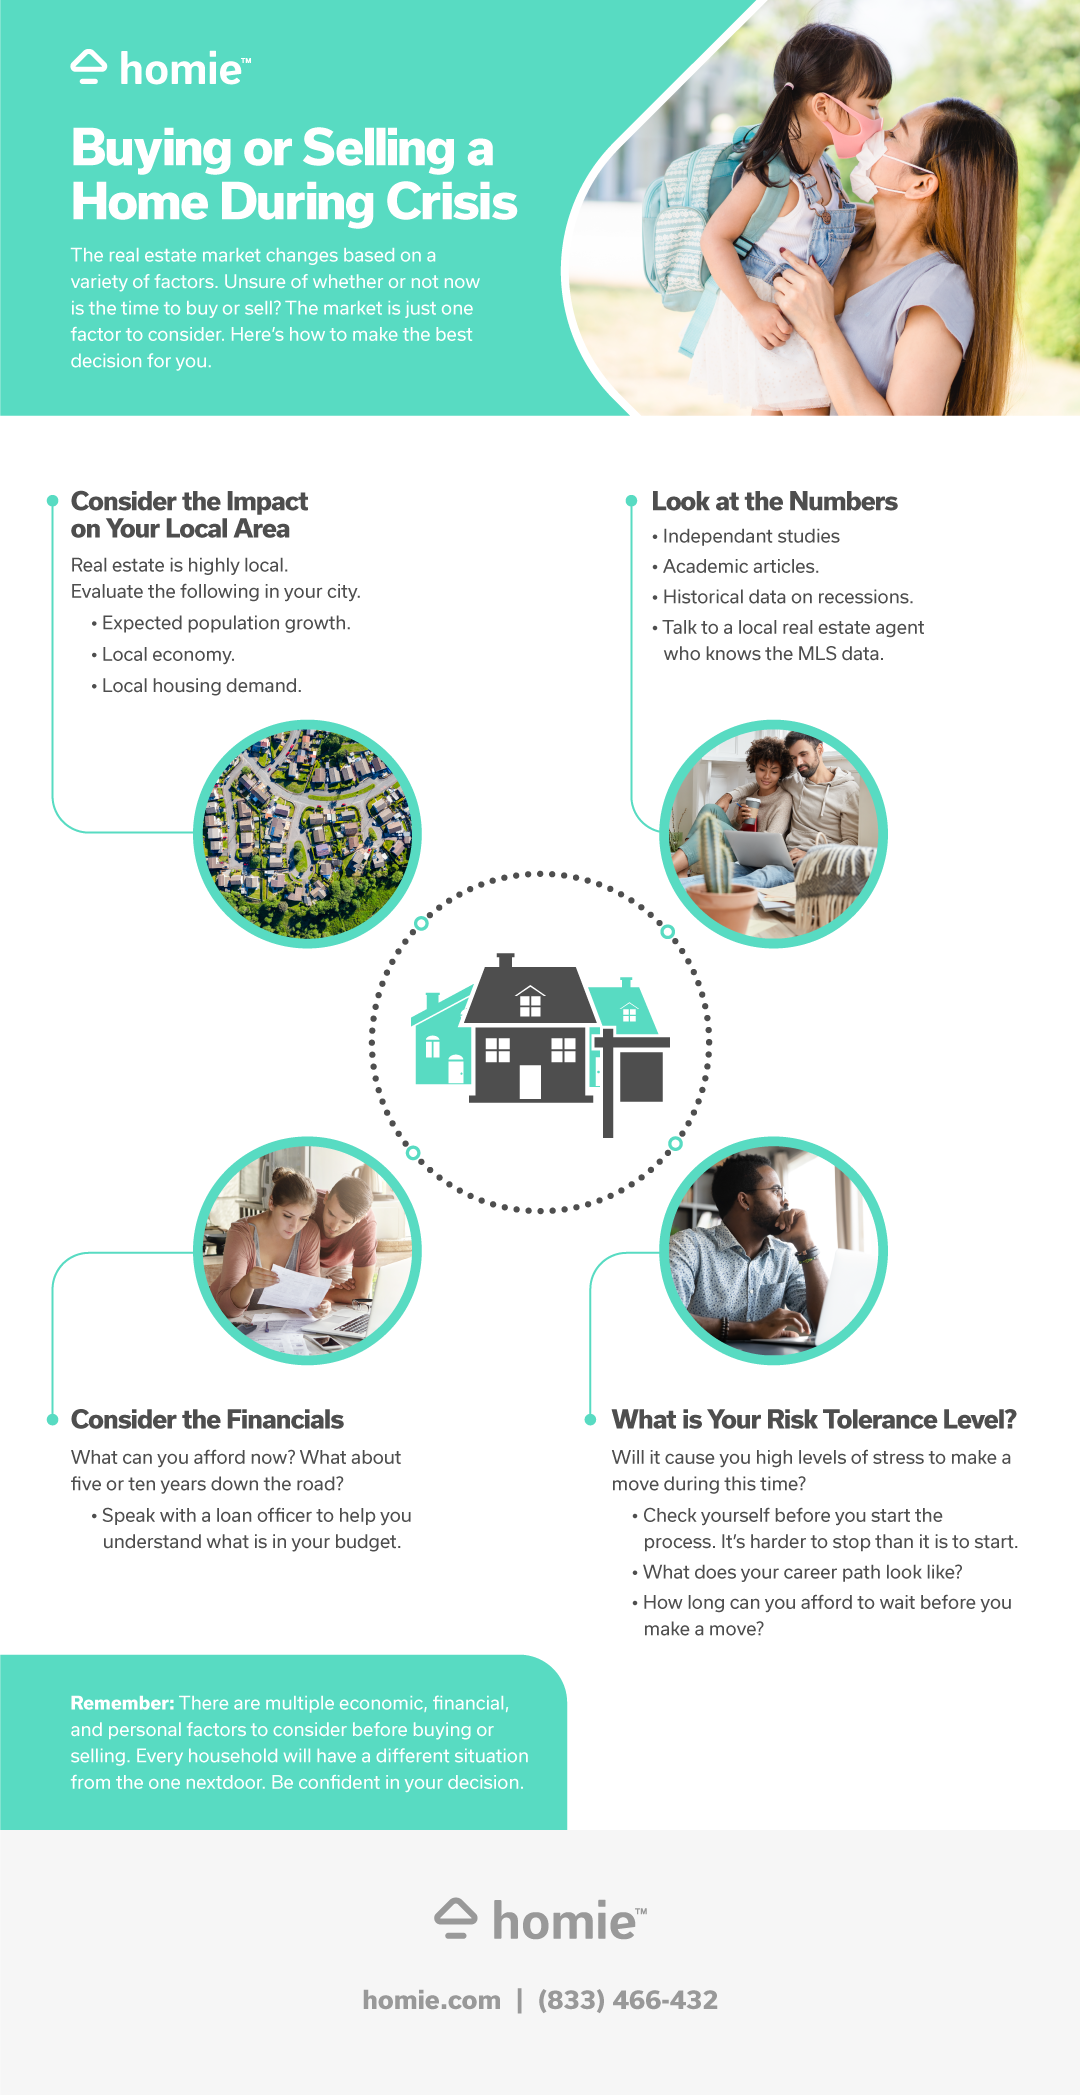 infographic explaining what to consider before buying or selling a home during an economic downturn